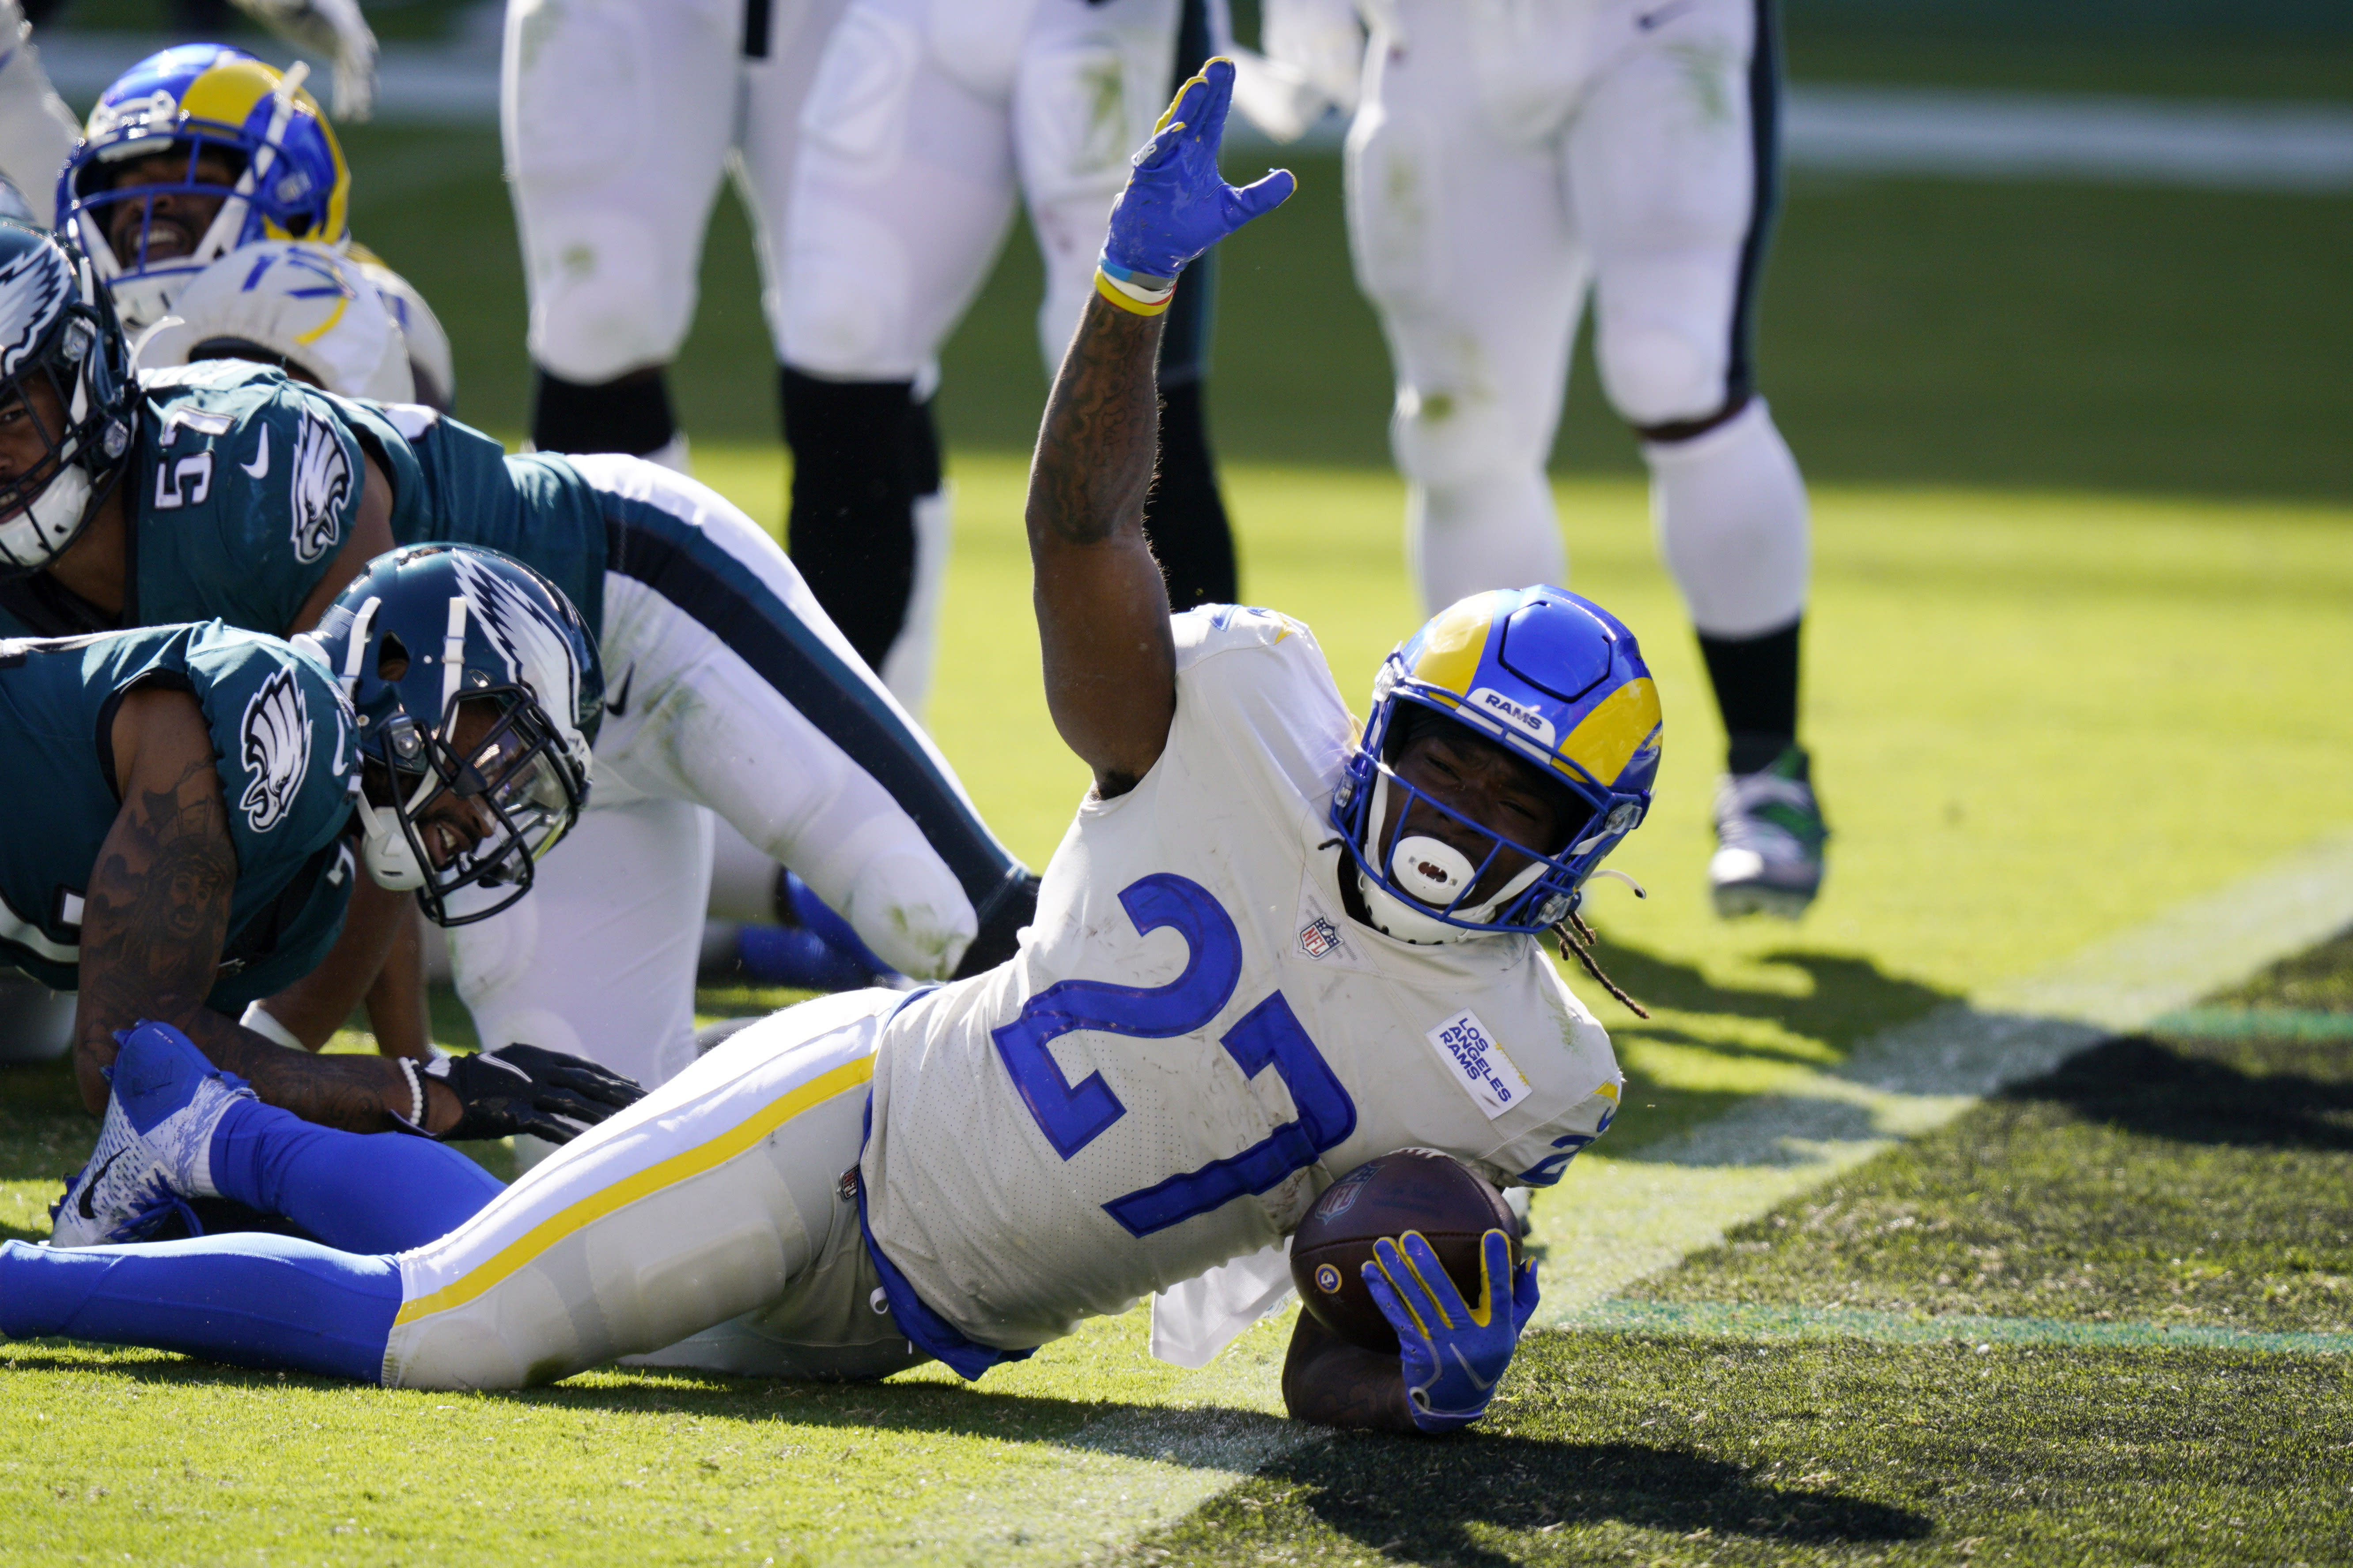 Los Angeles Rams' Darrell Henderson reacts after scoring a touchdown during the second half of an NFL football game against the Philadelphia Eagles, Sunday, Sept. 20, 2020, in Philadelphia. (AP Photo/Chris Szagola)